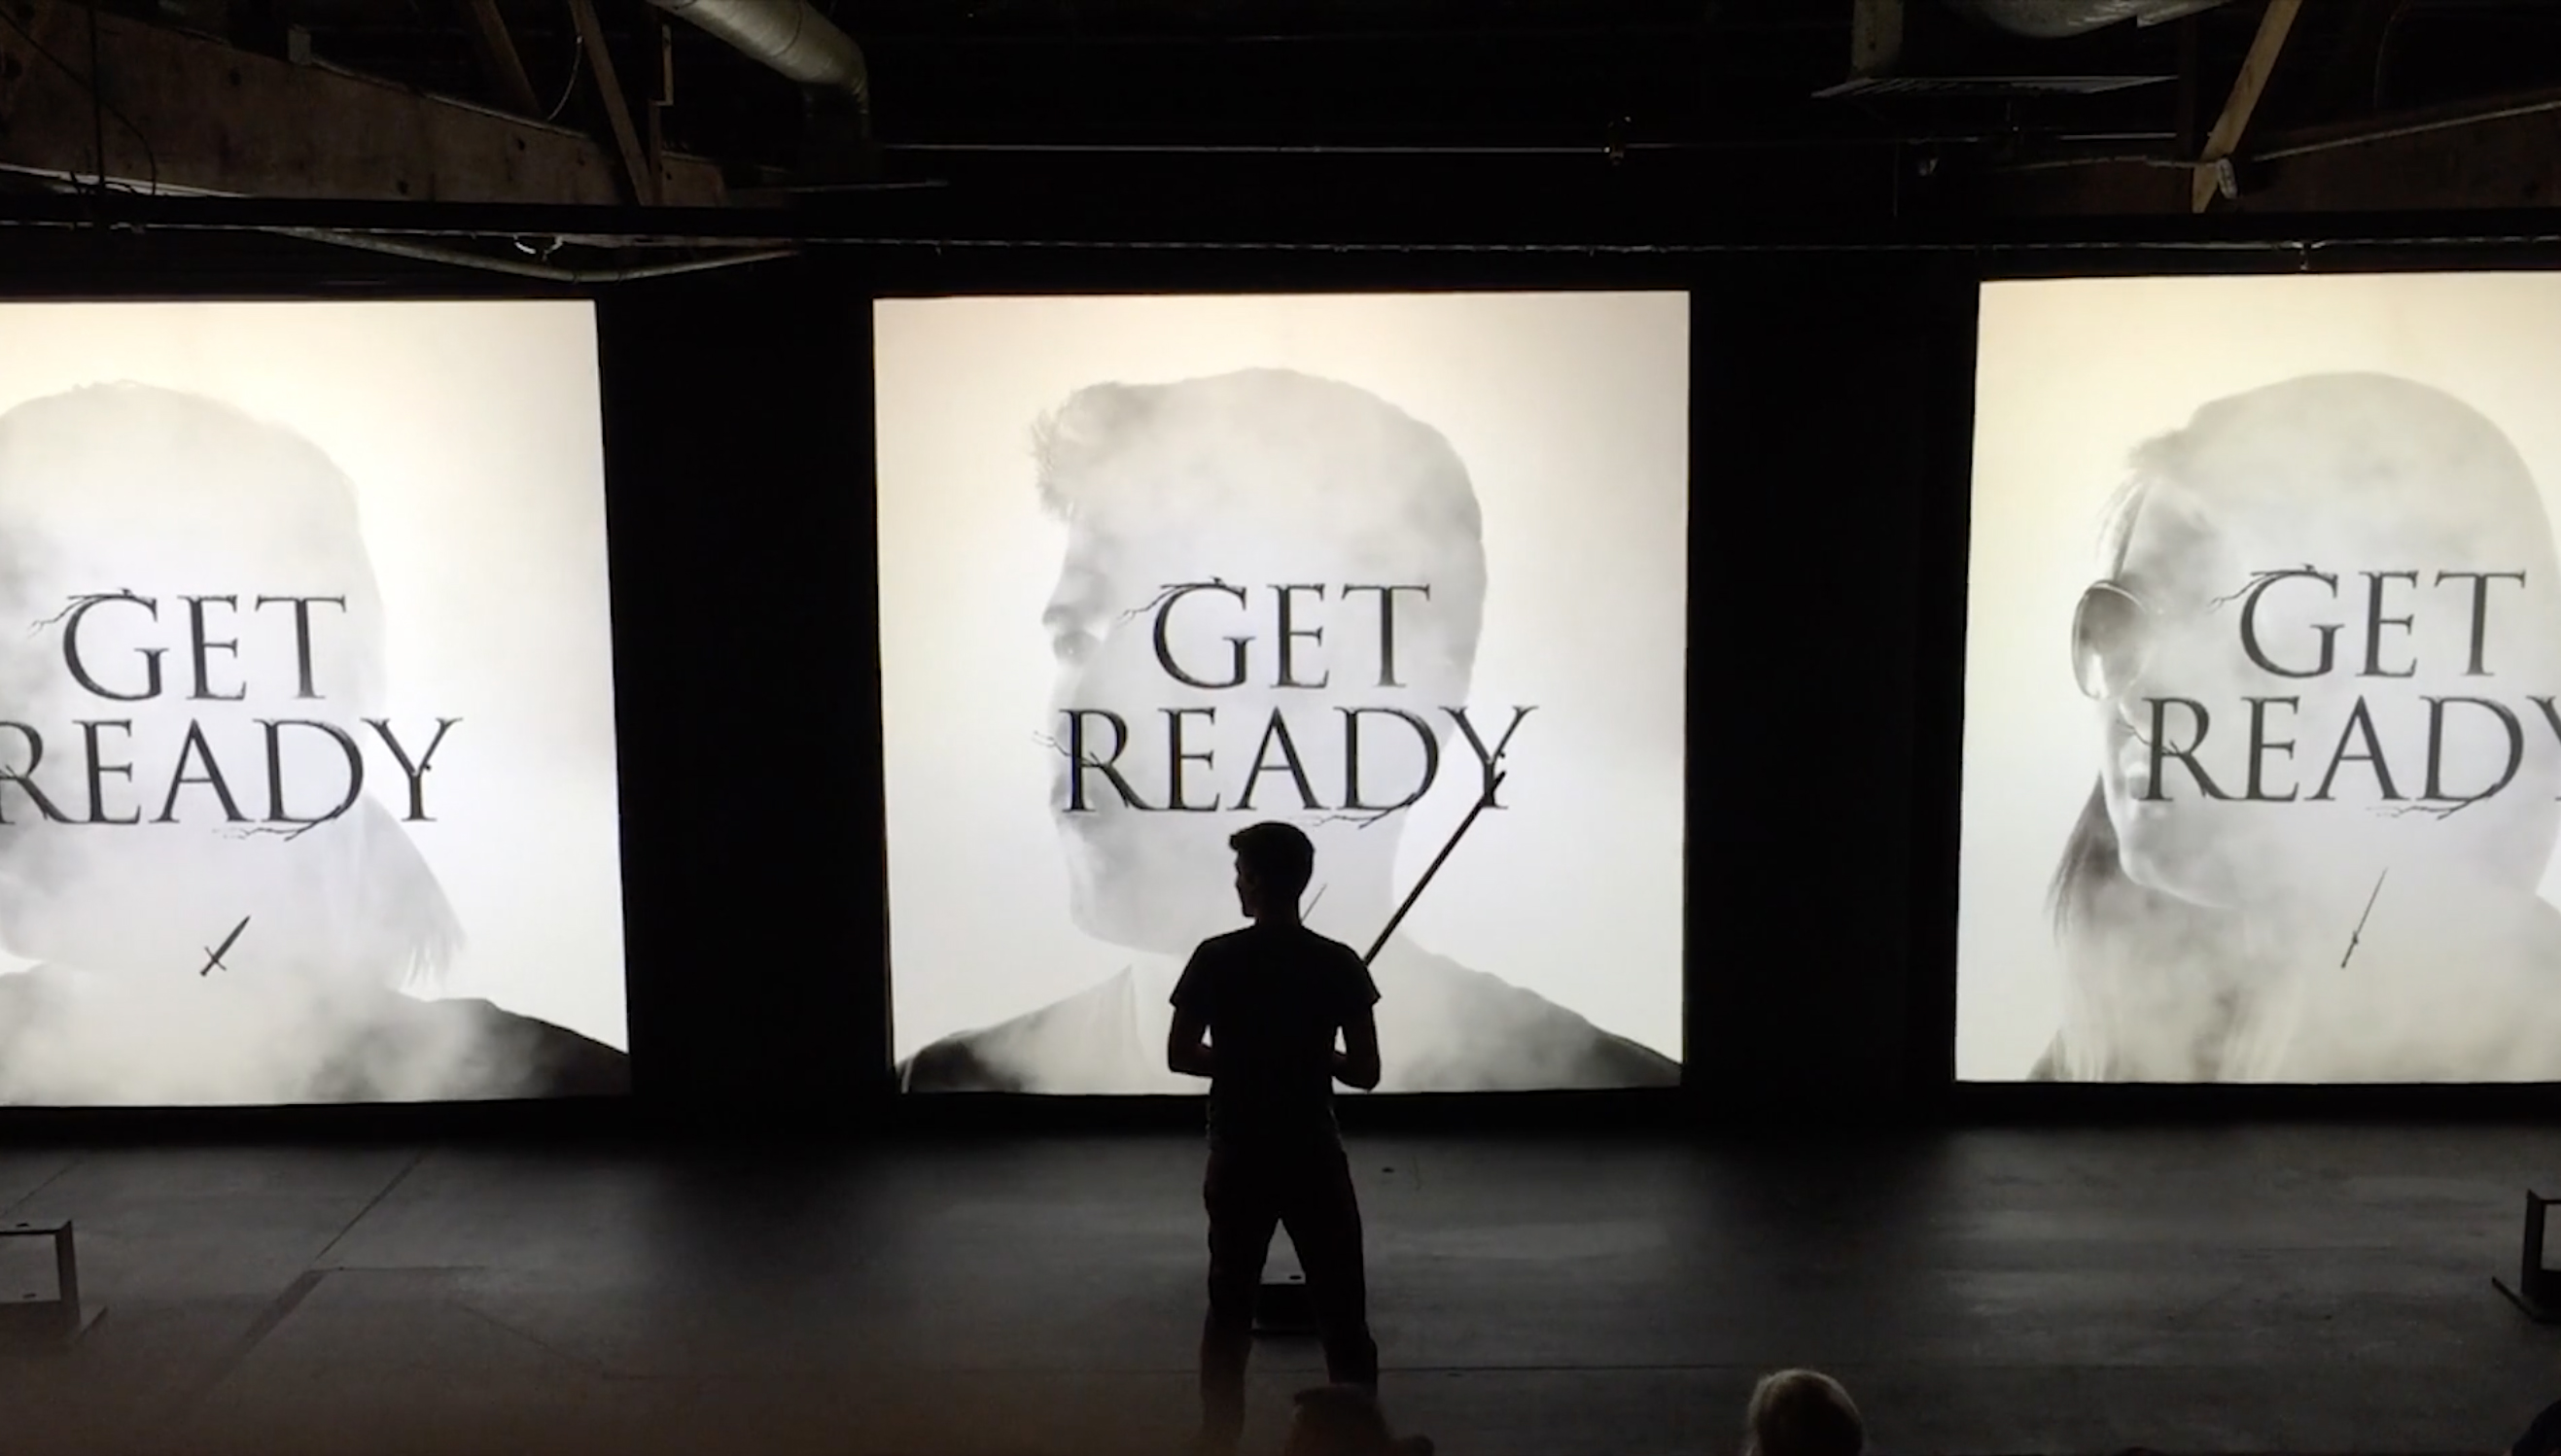 Game of Thrones [Sword Experience] Interactive Art Installation Wins Vega Digital Awards